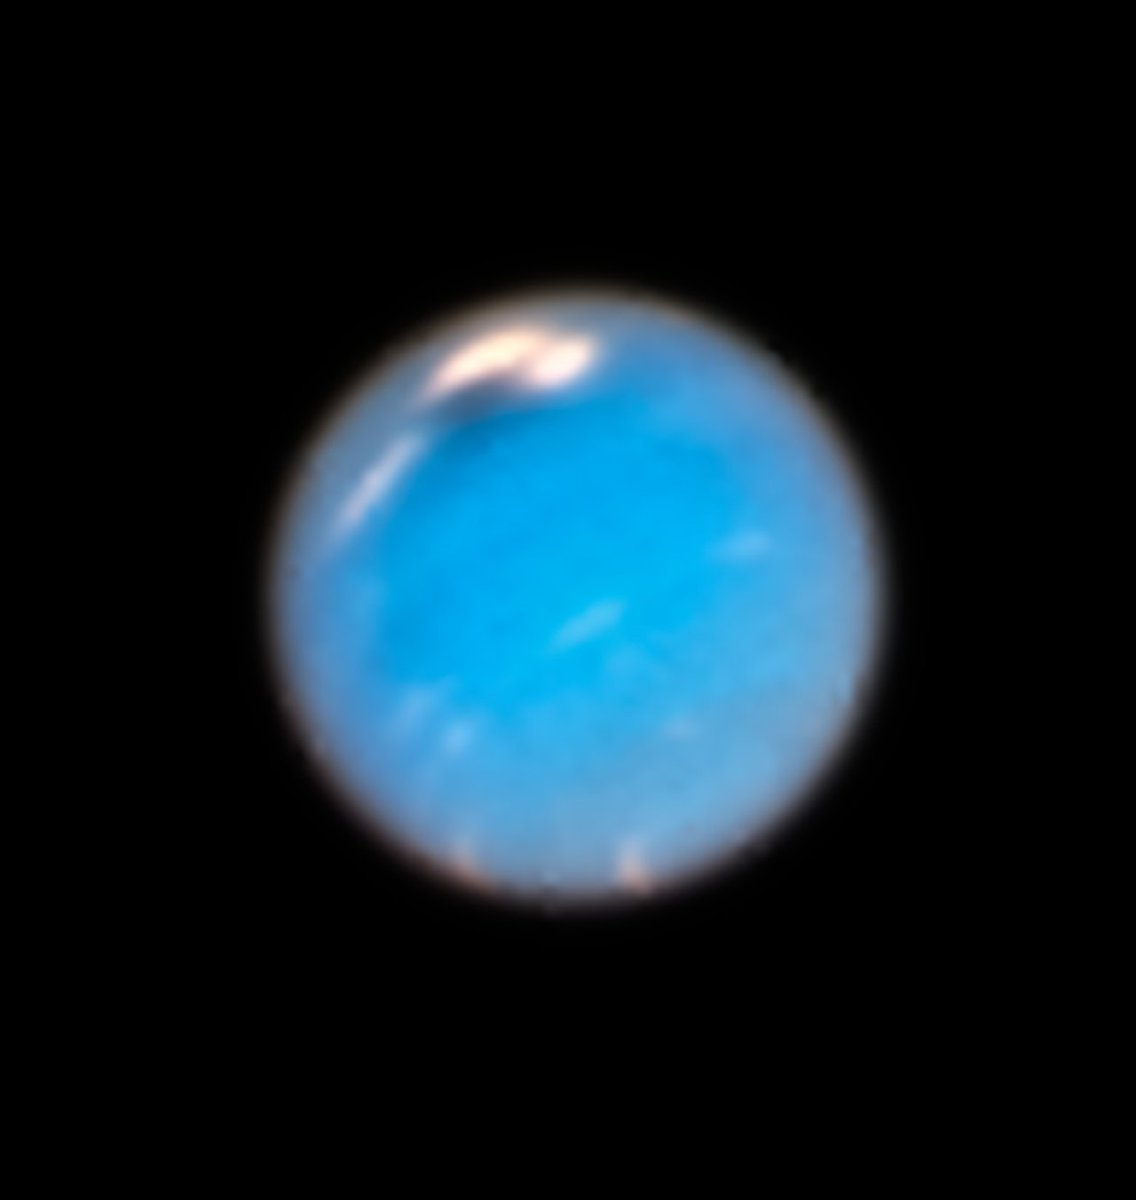 Hubble observes a storm coming to #Neptune and reveals a new northern Great Dark Spot (visible to the upper left of the planet's disc)  https://t.co/ab6ekX34BB